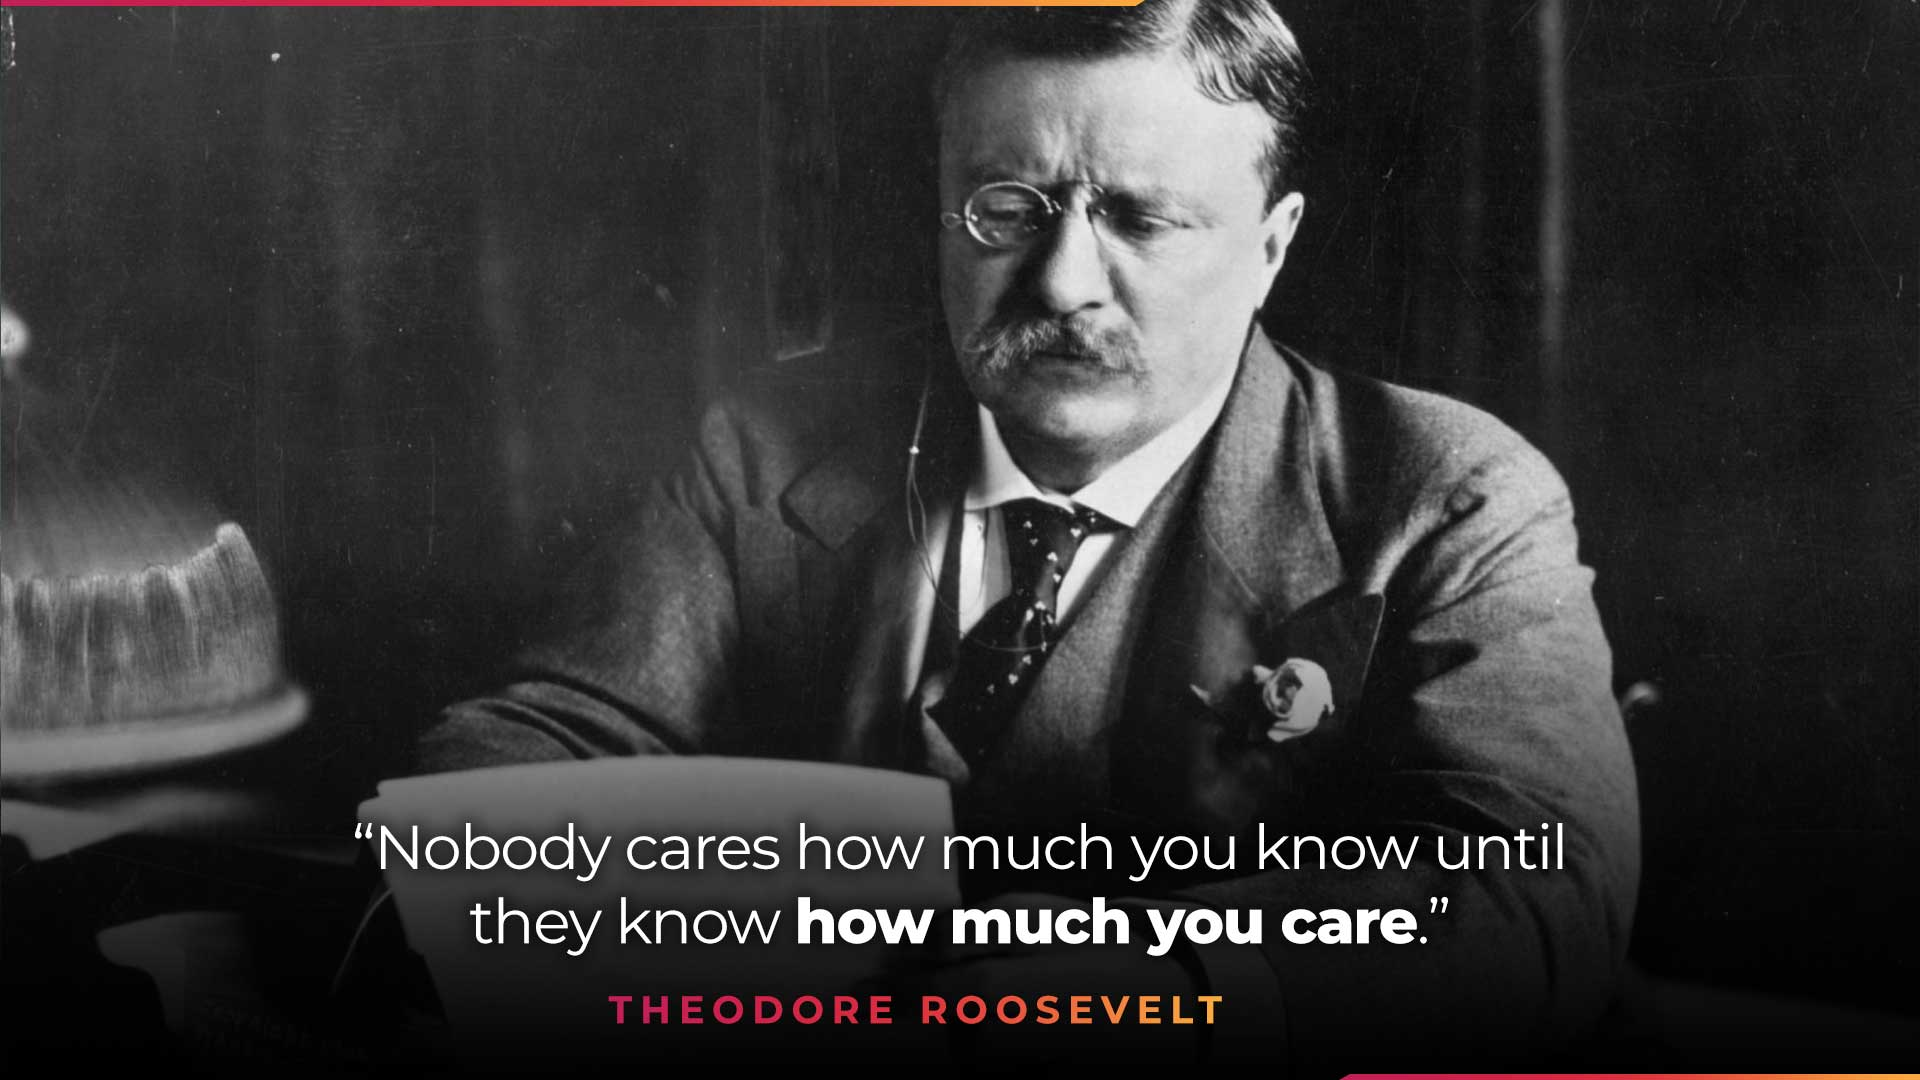 Theodore Roosevelt quote - nobody cares how much you know until they know how much you care